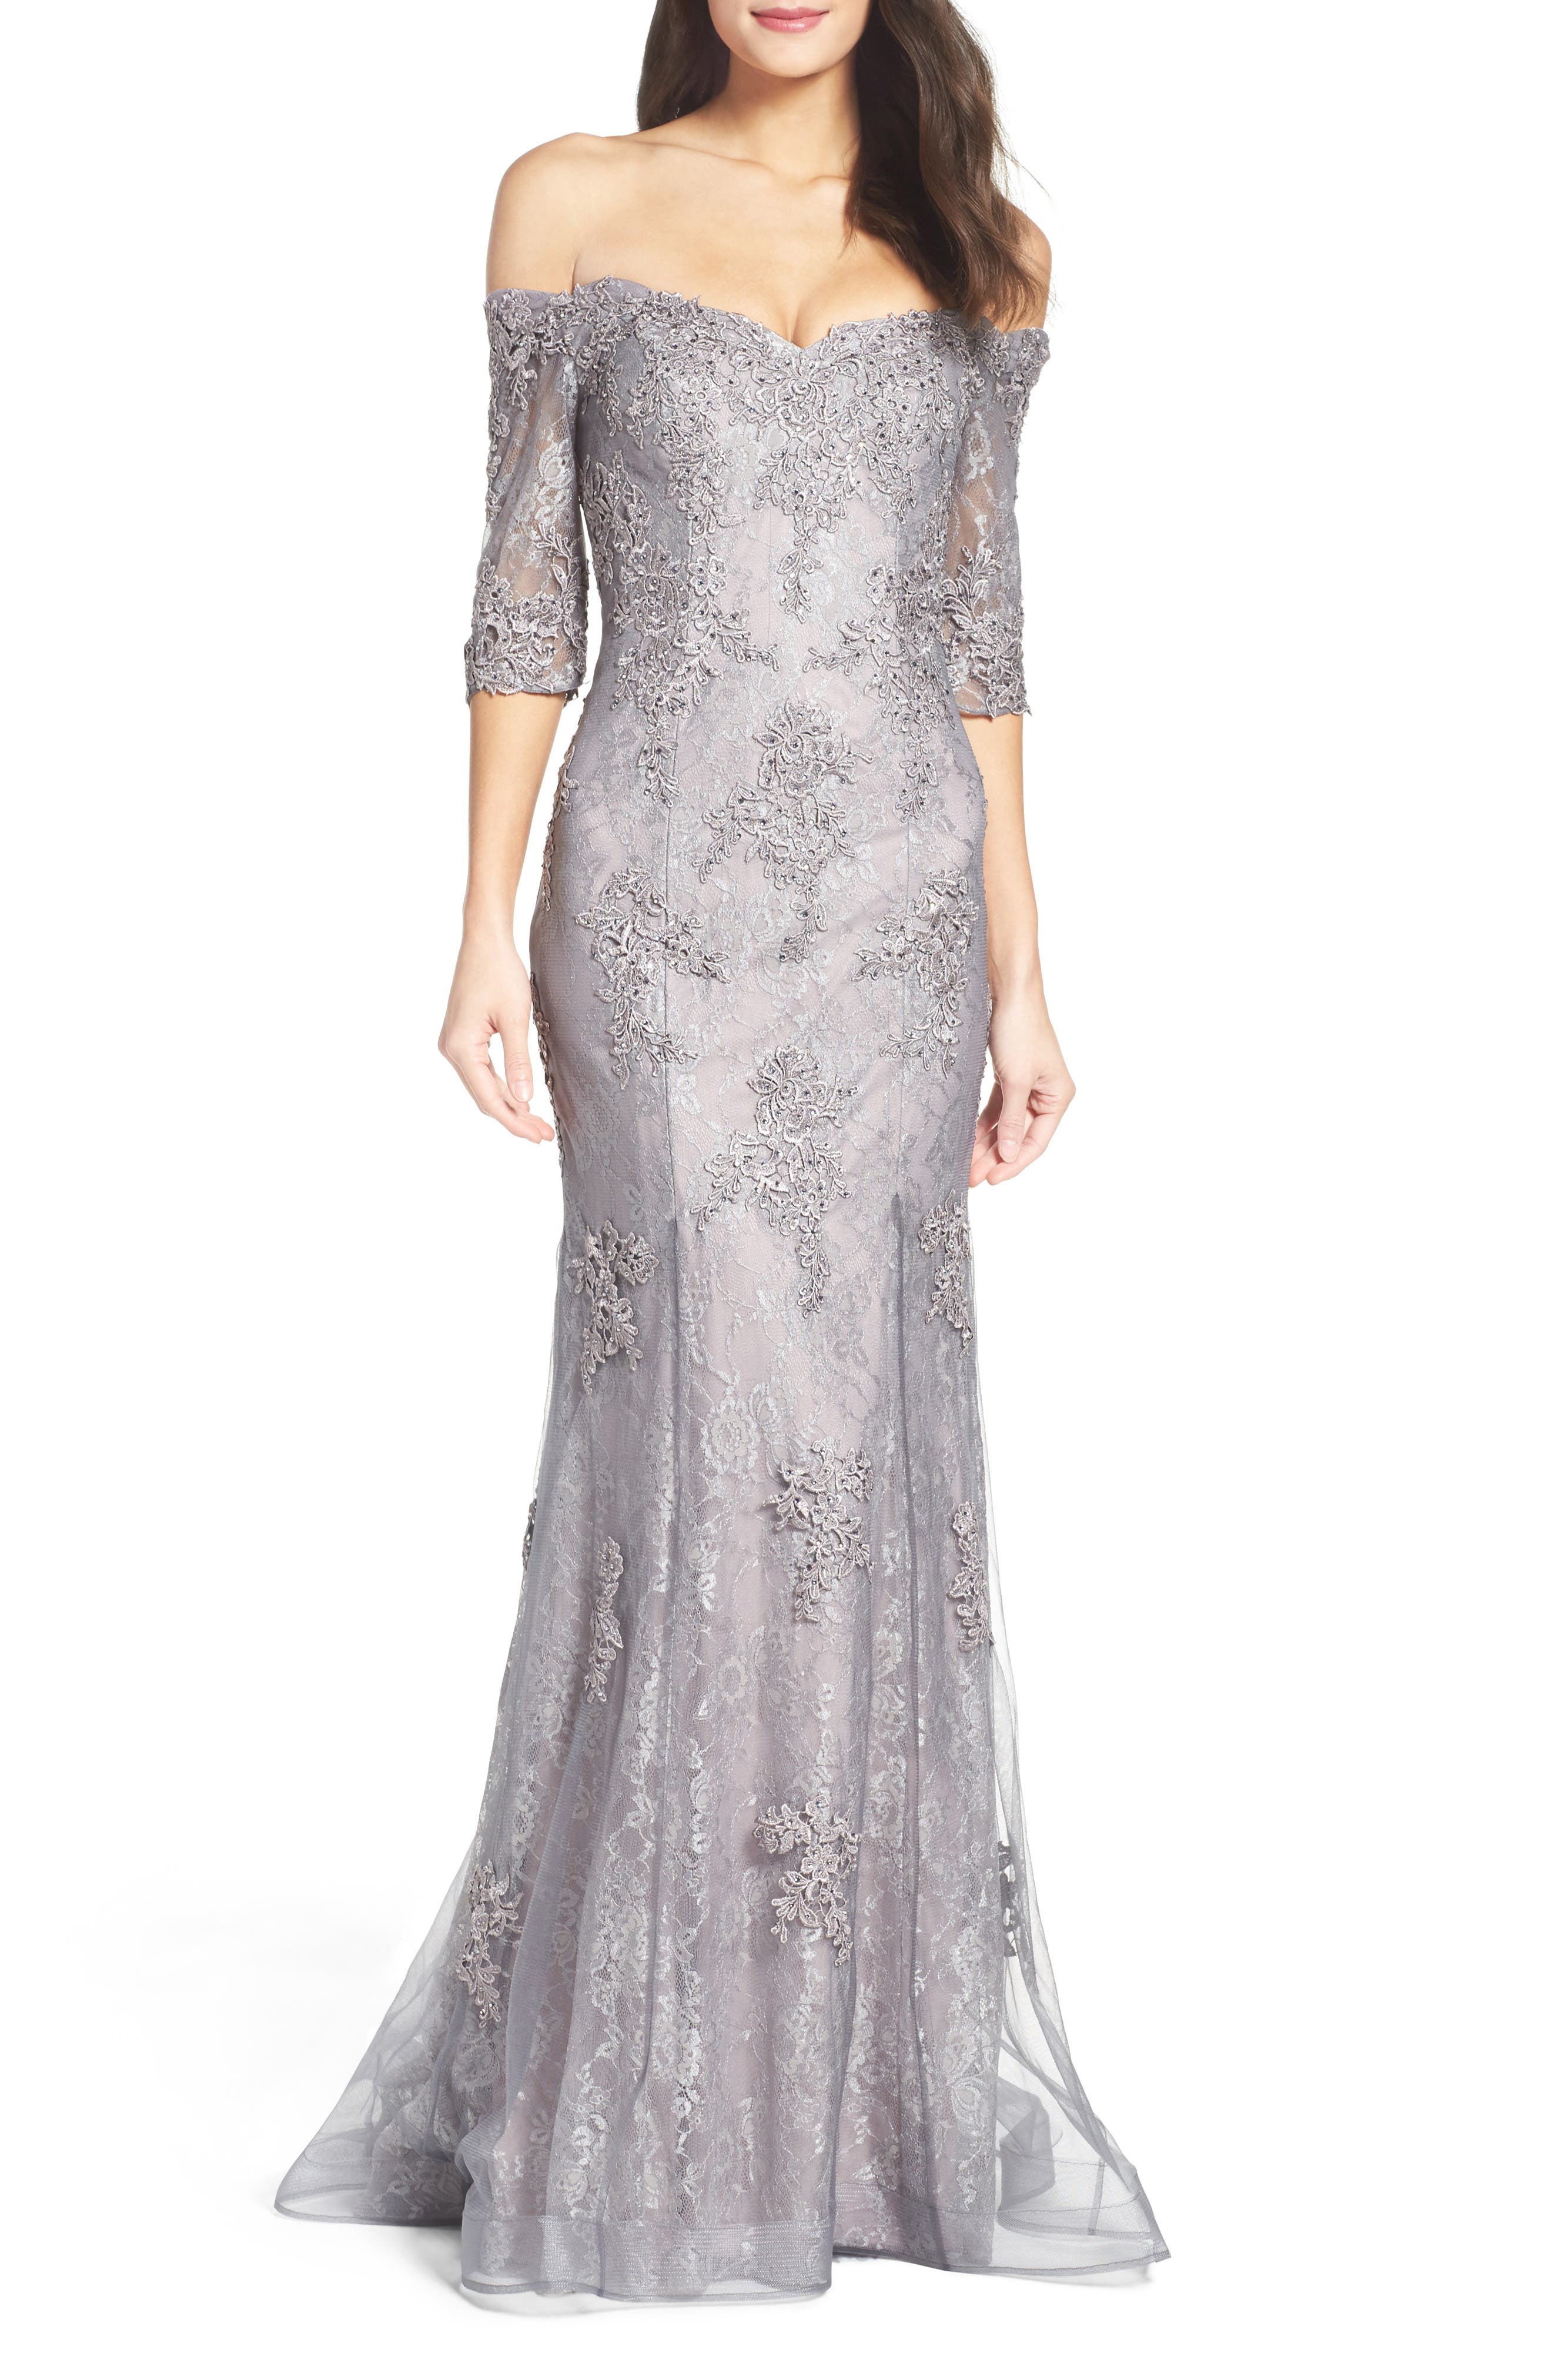 LA FEMME, Fit & Flare Gown with Train, Main thumbnail 1, color, PINK/ GRAY